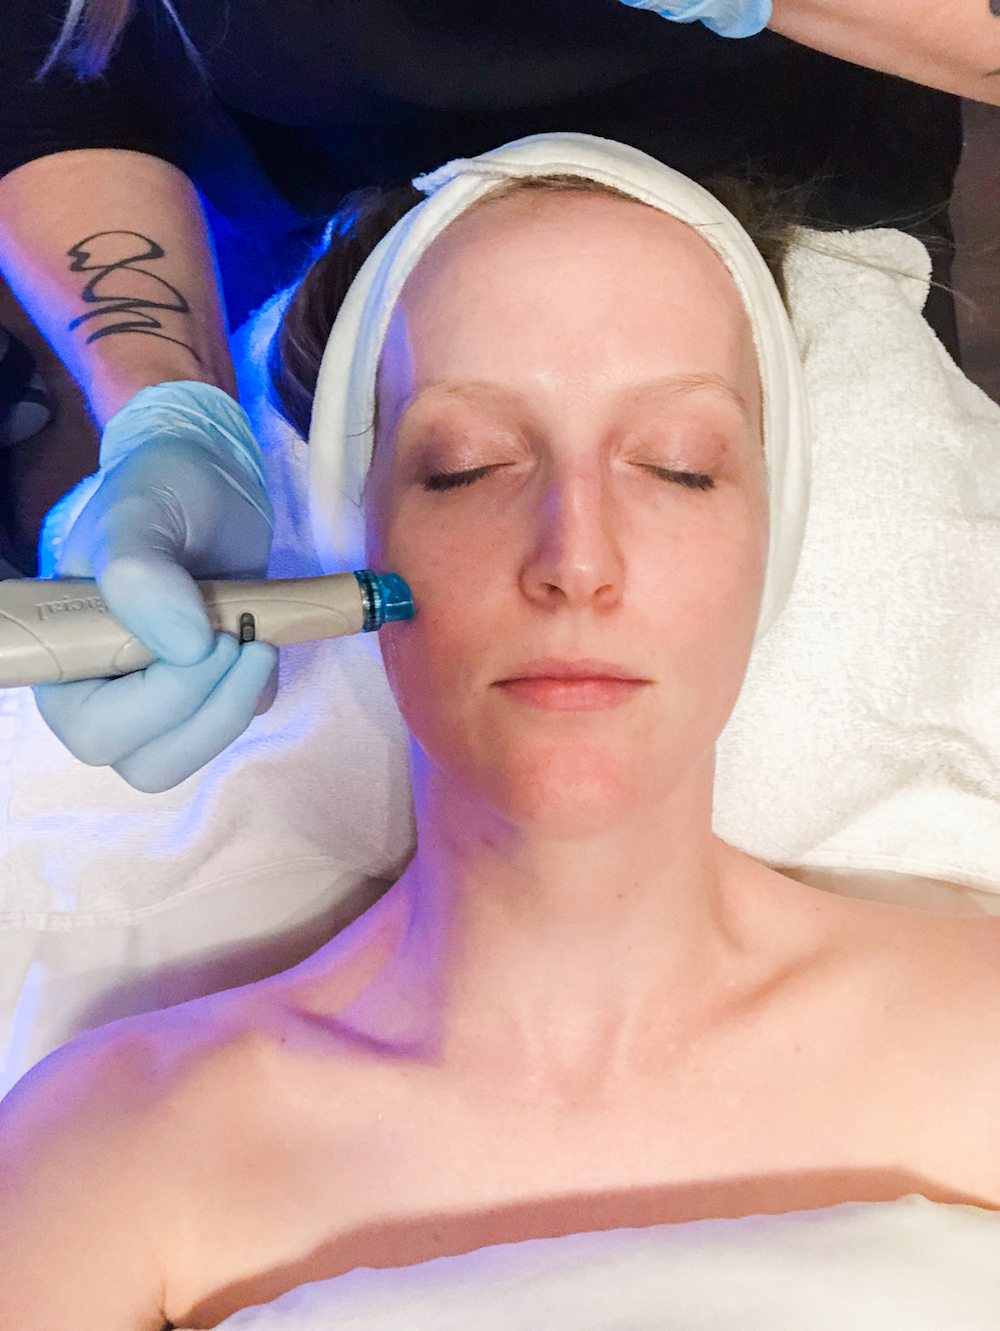 Viva Day Spa, Hydrafacial MD, benefits of HydraFacial, regular facial vs. HydraFacial, Austin spa, Austin day spa, Austin med spa, domain Northside, med spa, skin brightening facial, Austin blogger, HydraFacial review, beauty blogger